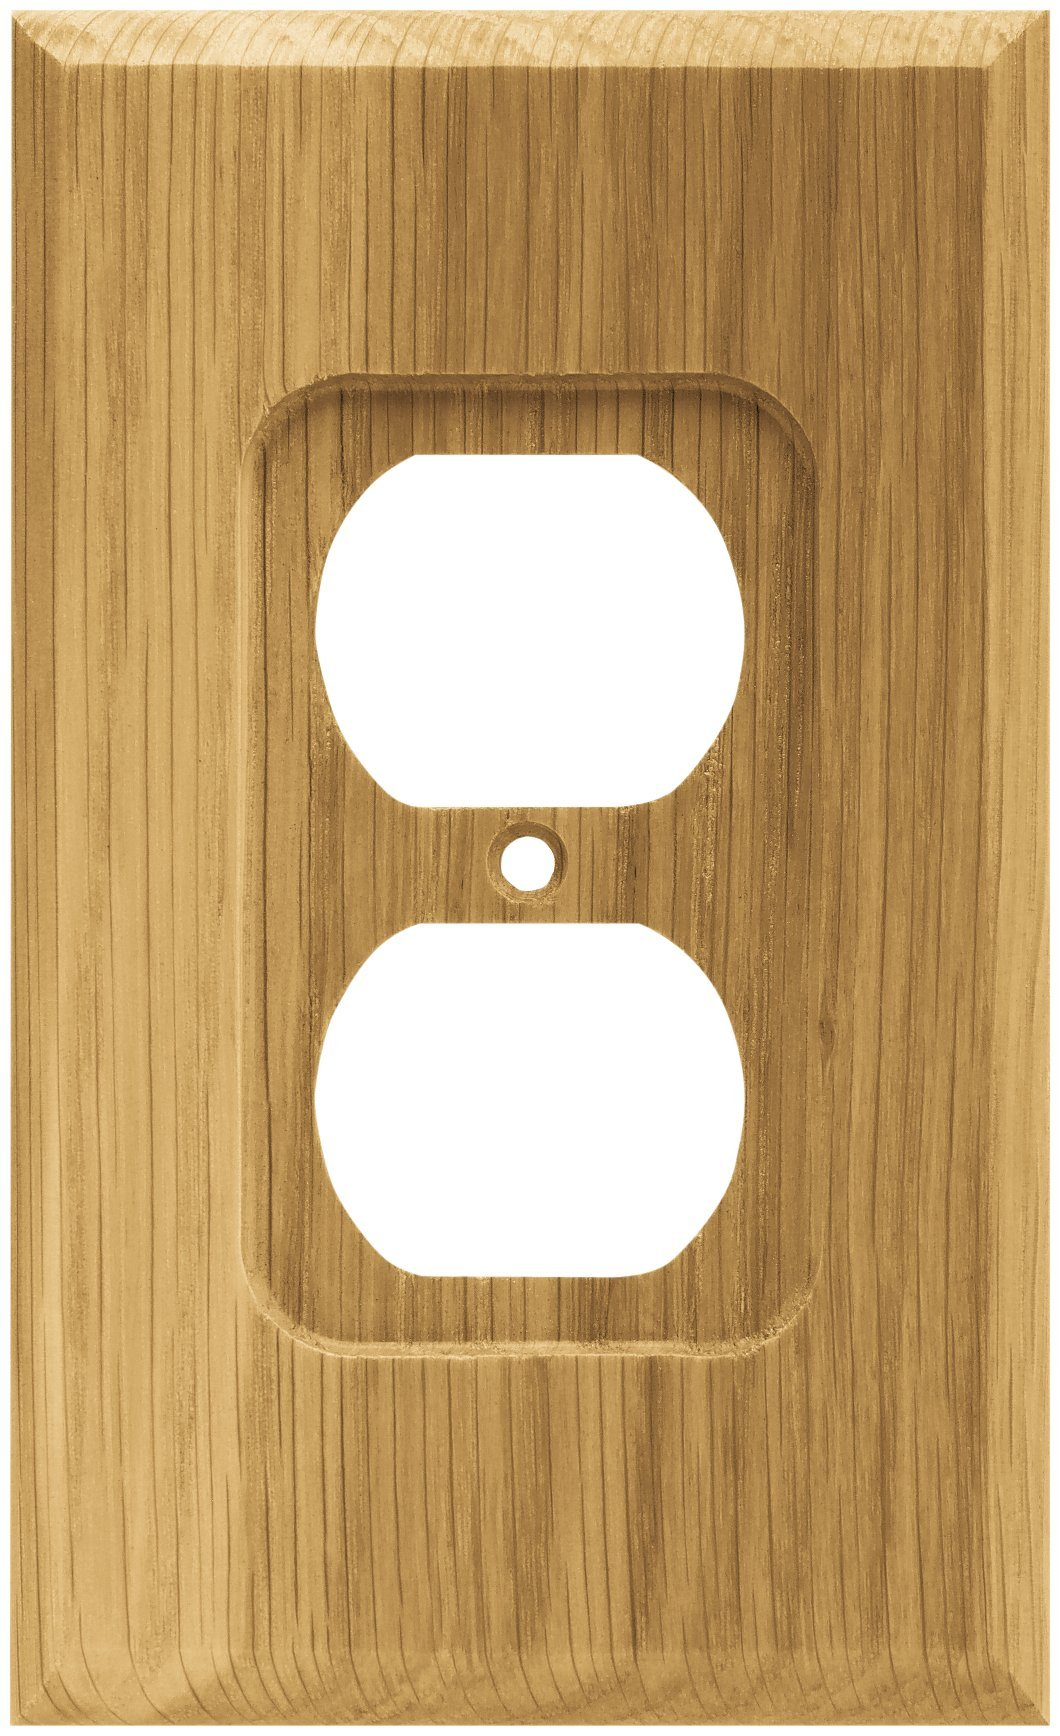 Brainerd 64665 Wood Square Single Duplex Outlet Wall Plate / Switch Plate / Cover, Medium Oak by Brainerd (Image #1)